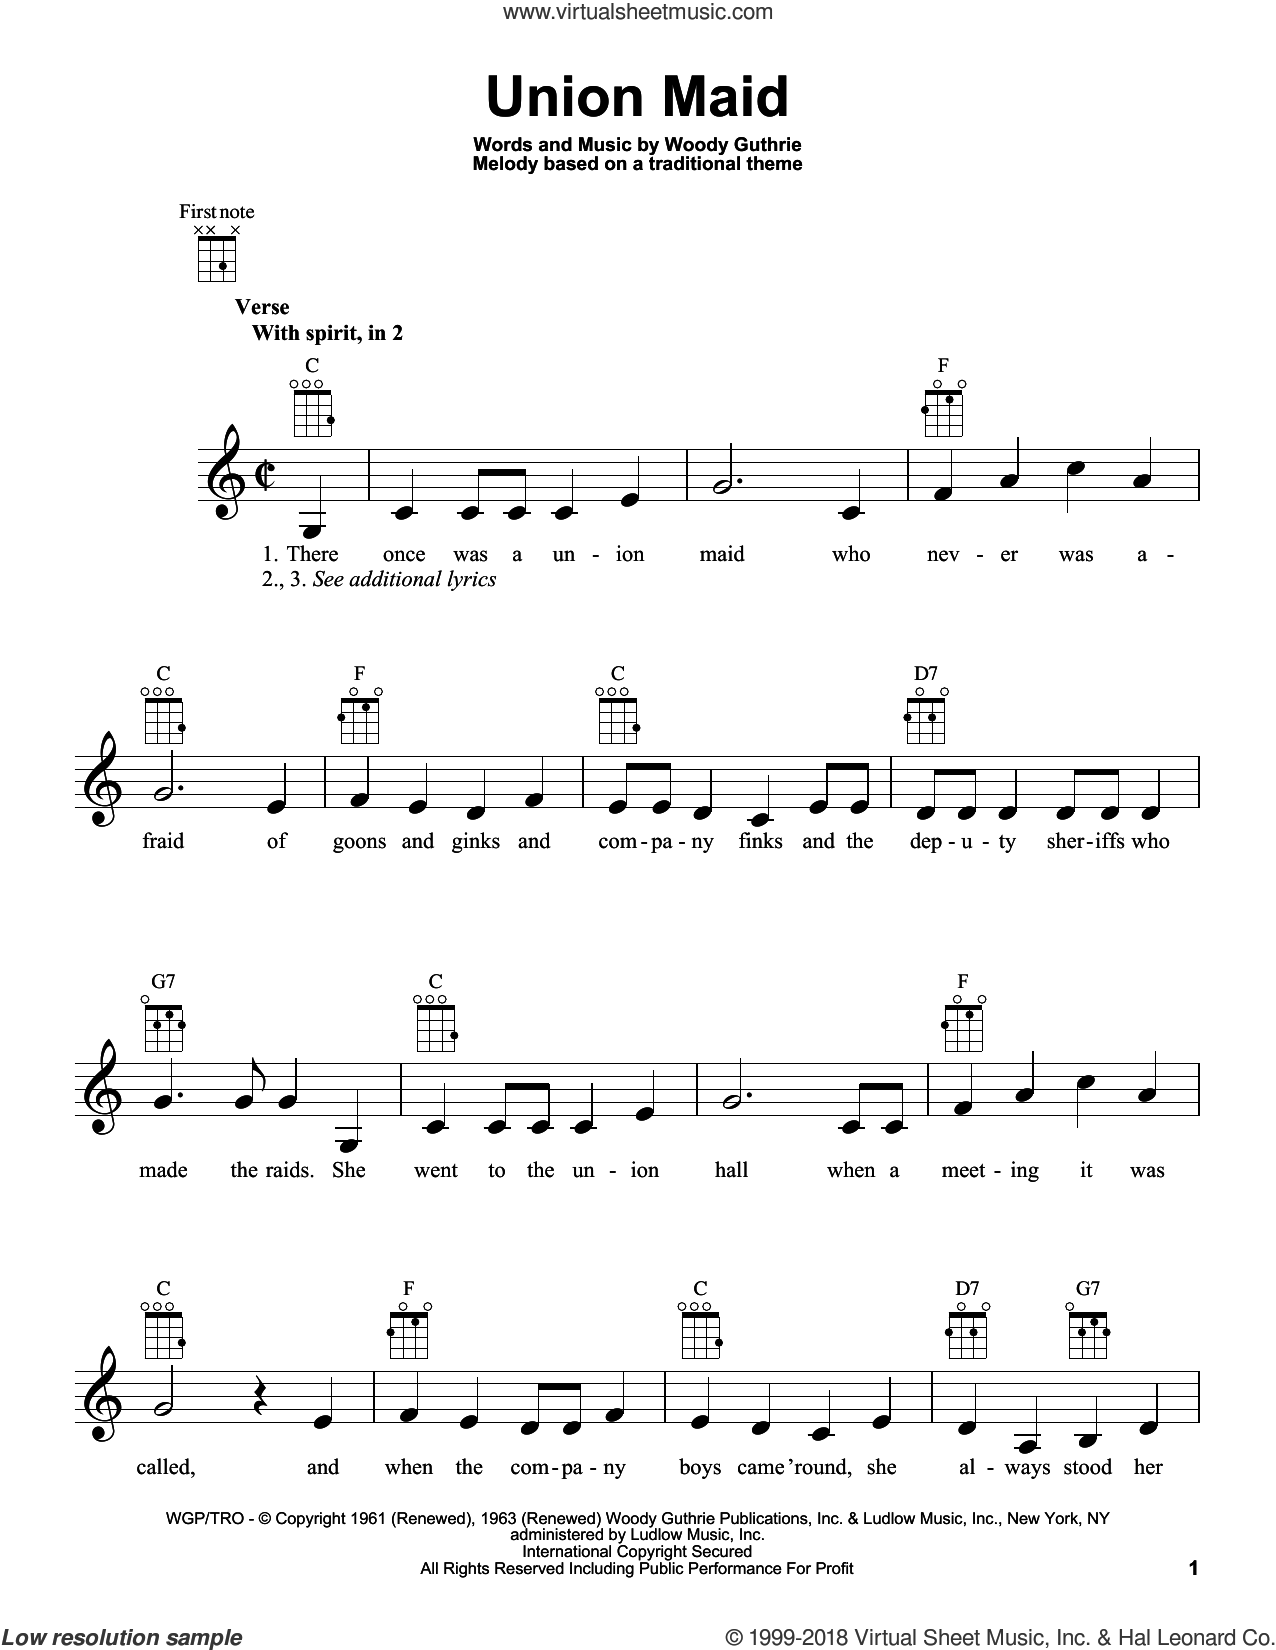 Union Maid sheet music for ukulele by Woody Guthrie, intermediate skill level